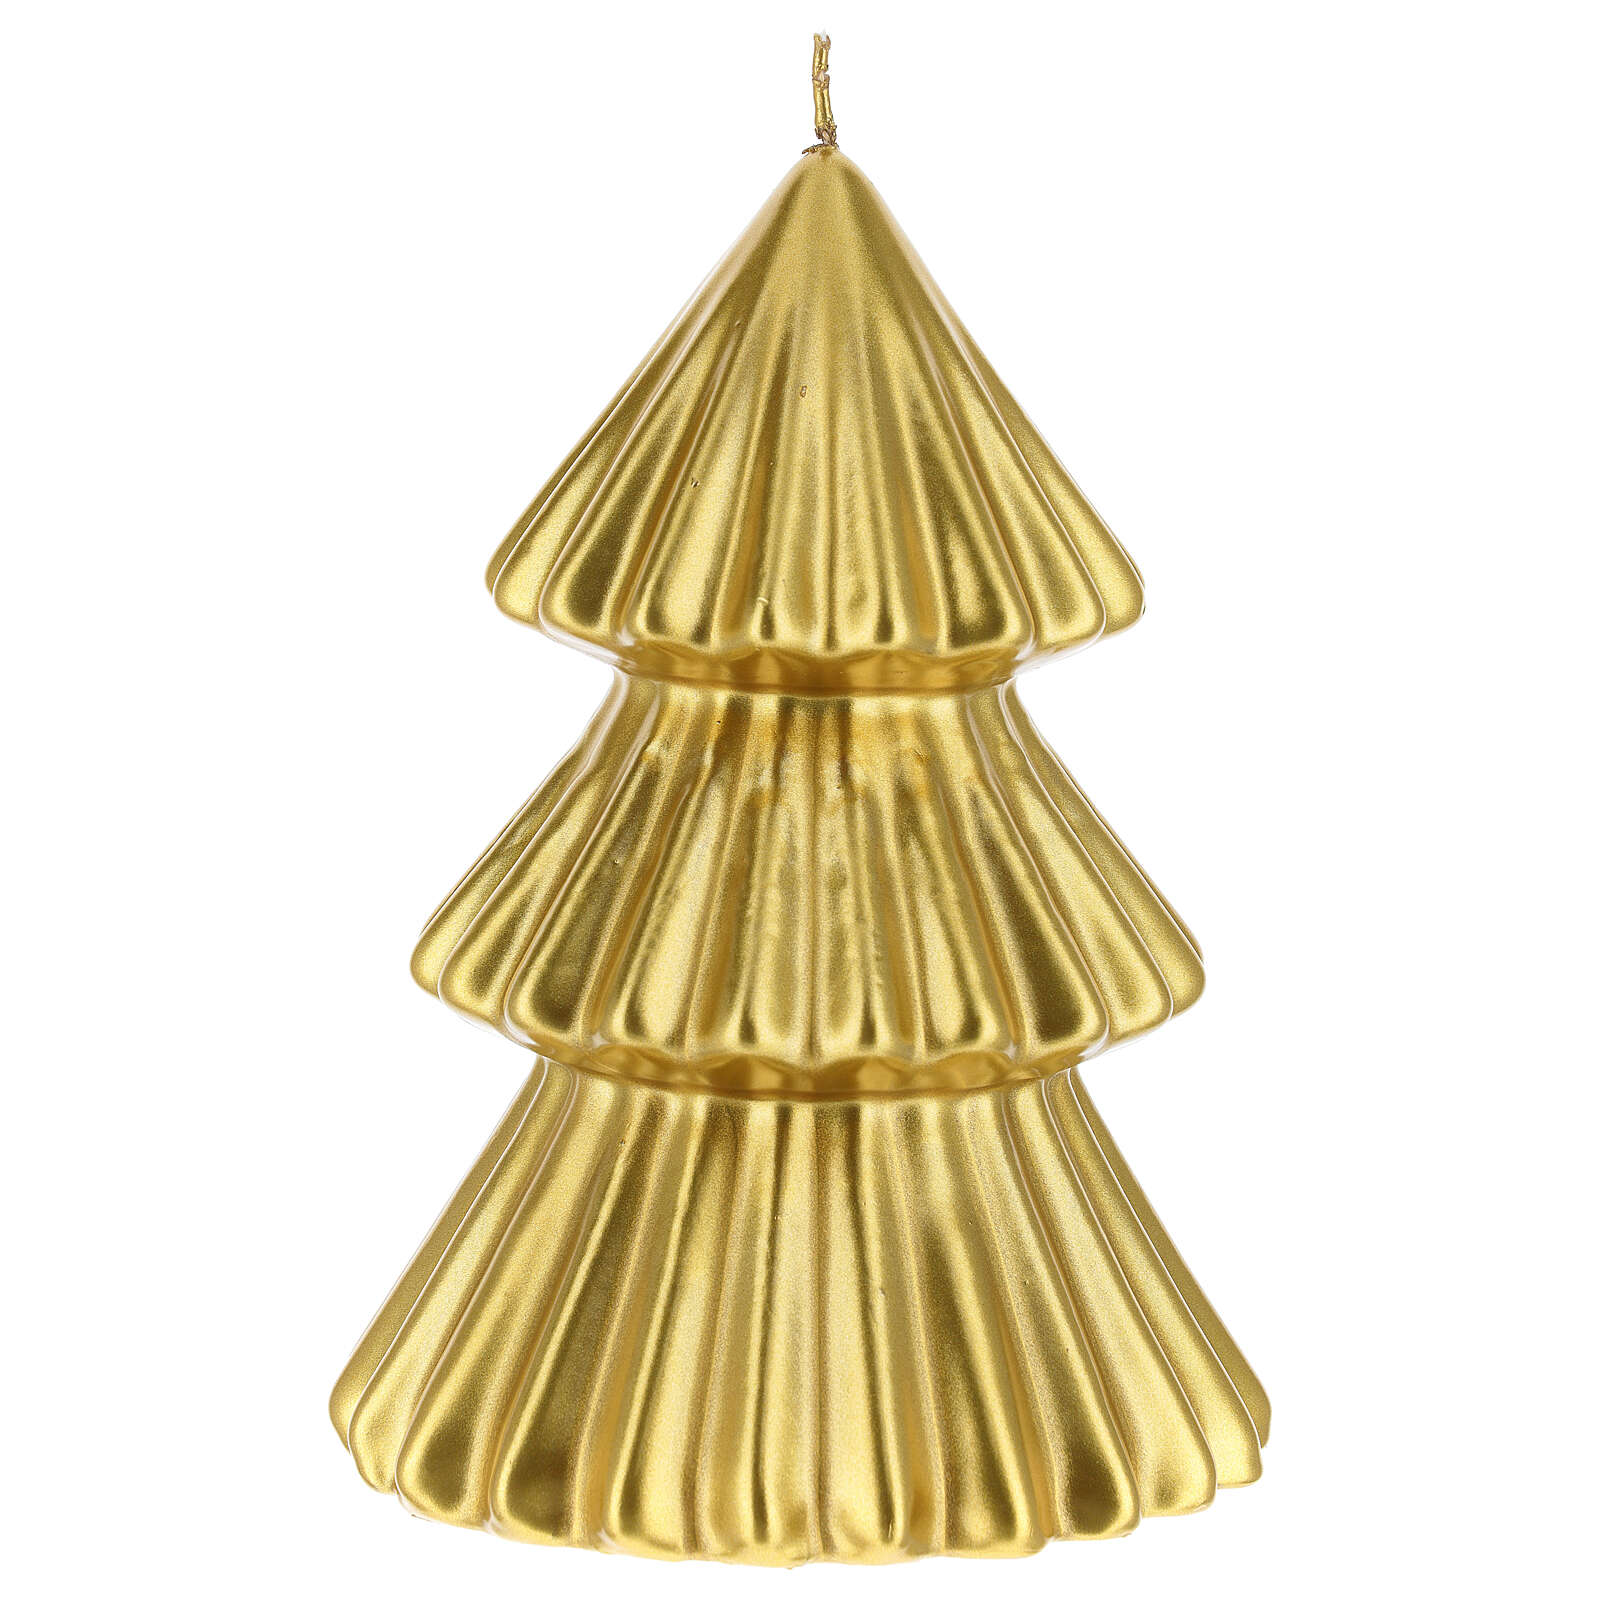 Golden Tokyo Christmas tree candle 7 in 3